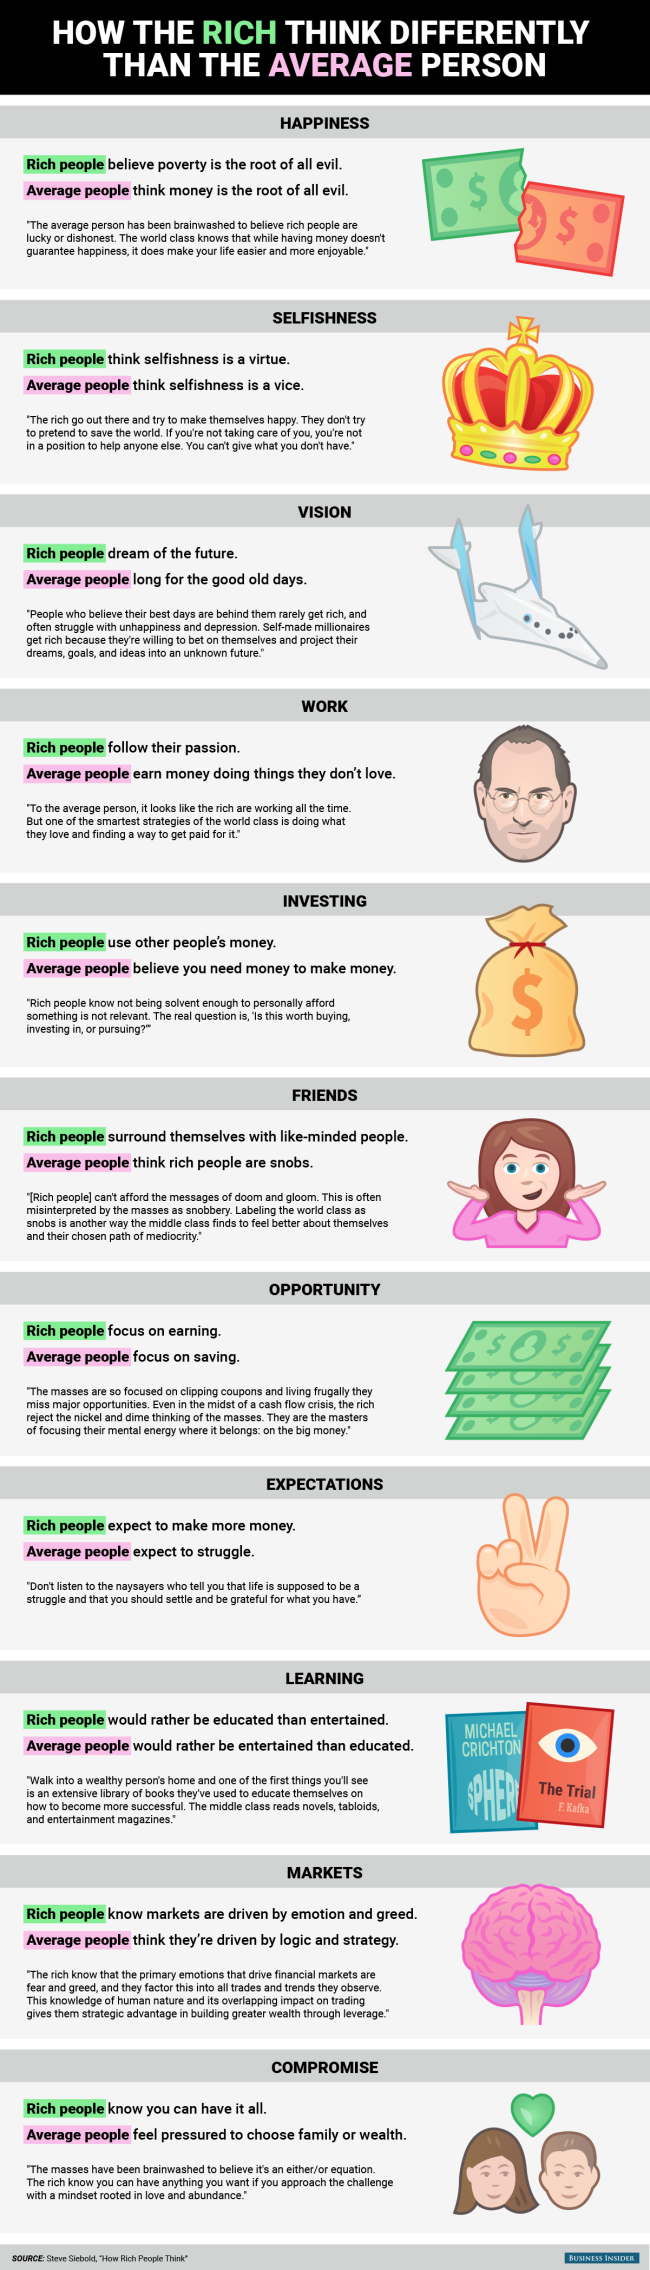 11 ways rich people think differently from the average person keep bigraphicshow the rich think differently than the average person ccuart Choice Image